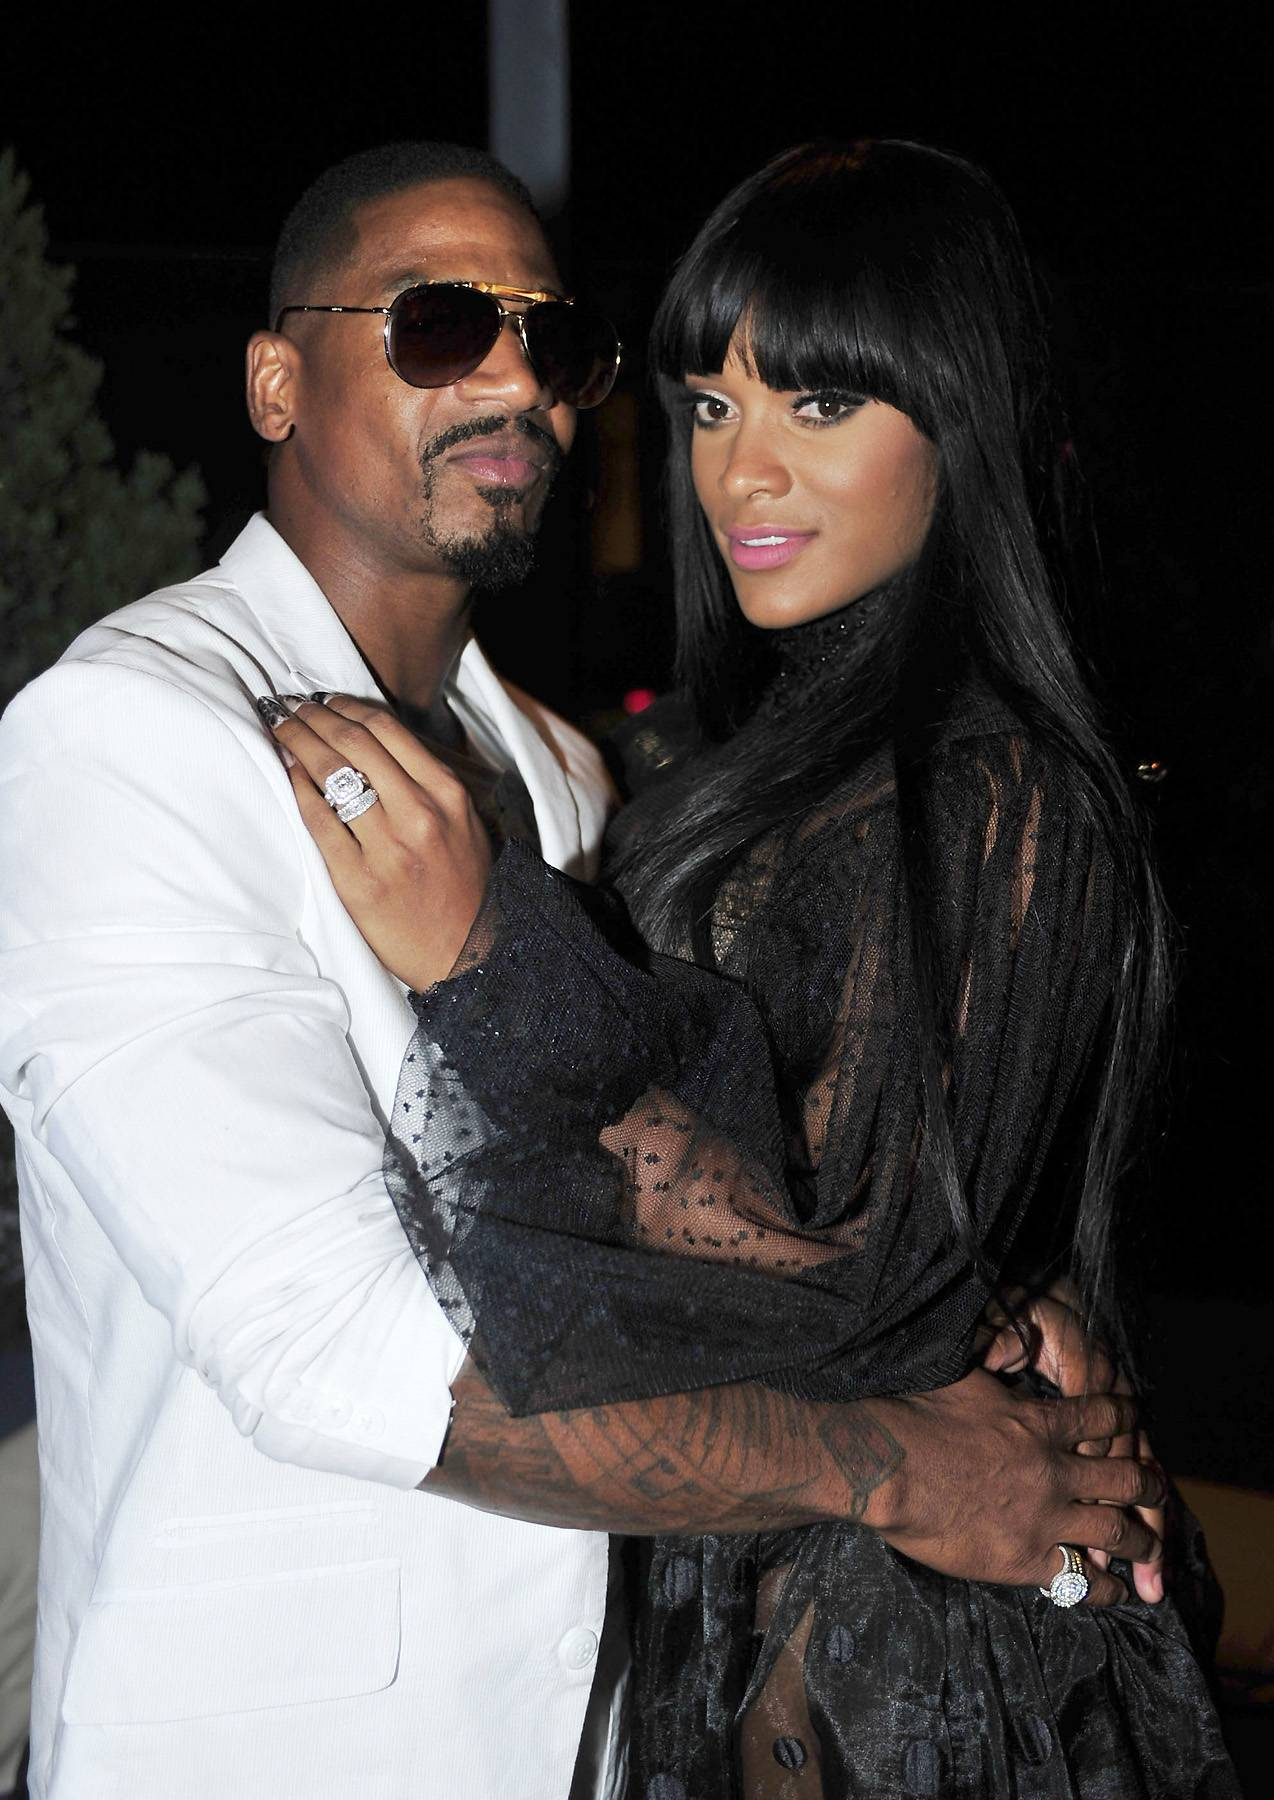 """Stevie J and Joseline Address More Rumors - Stevie J and Joseline Hernandez have addressed the rumors that they are getting evicted from their Atlanta home...kind of. """"Steebie"""" released an Instagram video of himself in a U-Haul van in which he made a passive aggressive statement saying that he and Joseline are """"moving up like George and Weezy."""" He also added, """"Coming soon, Stevie J and Joseline show."""" So...are they getting evicted or nah?  (Photo: Moses Robinson/Getty Images for UrbanDaddy)"""